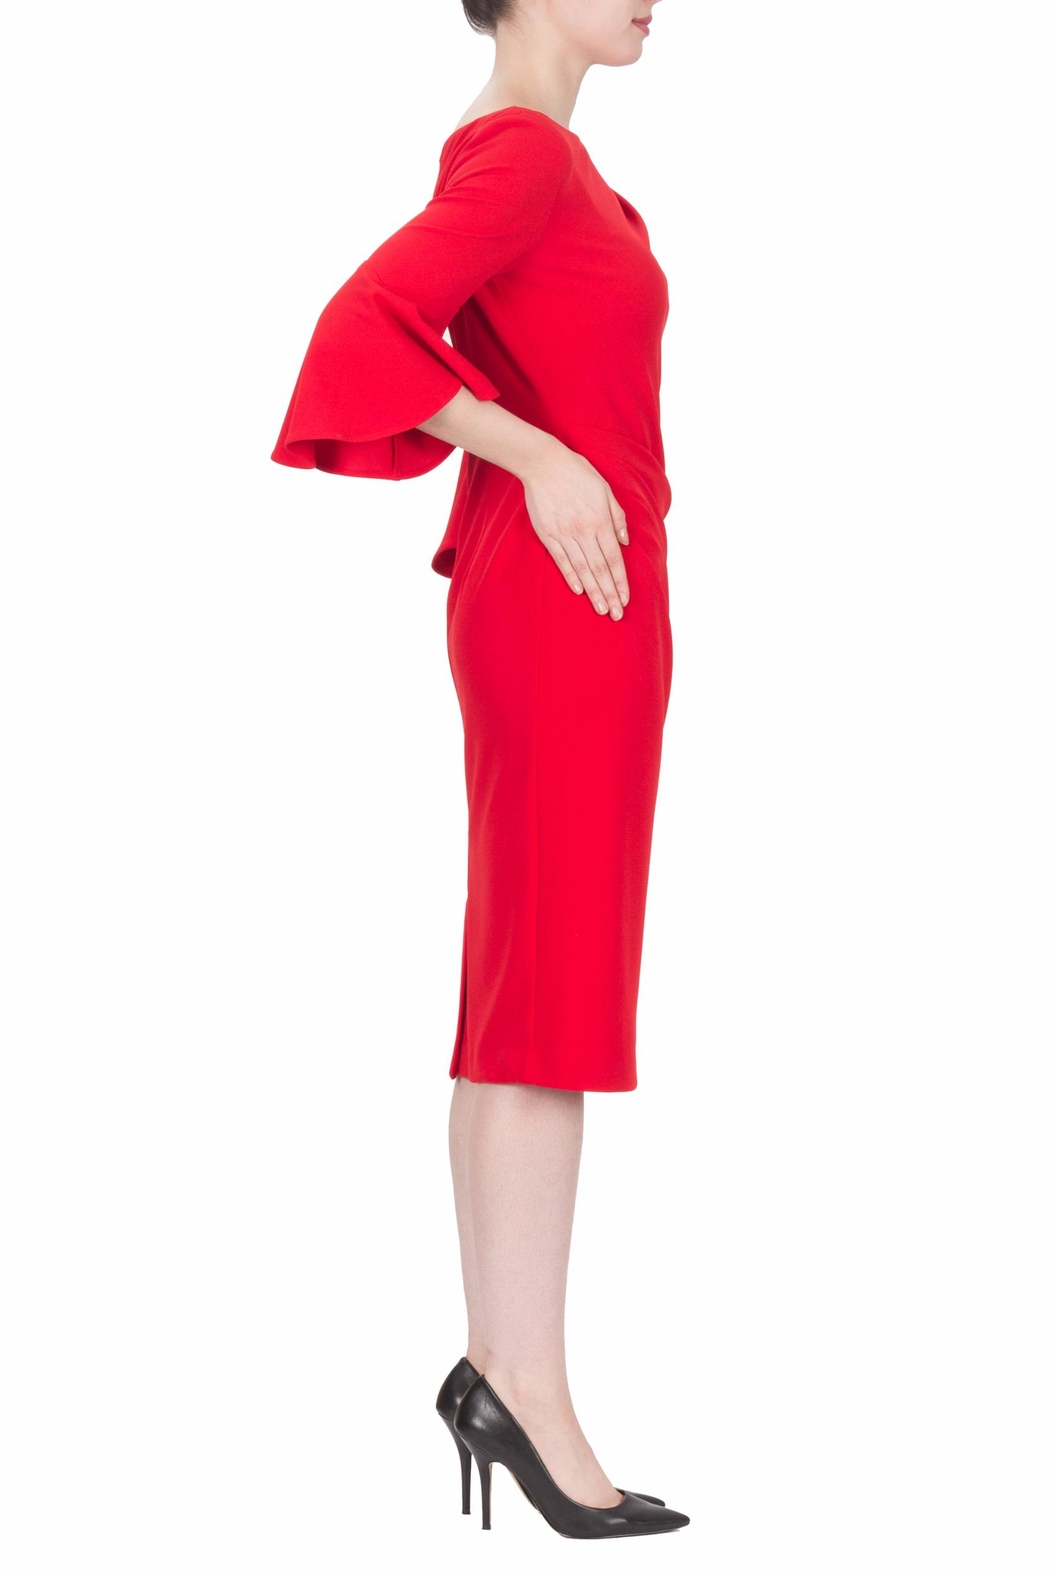 Joseph Ribkoff Lipstick Red Dress - Front Full Image